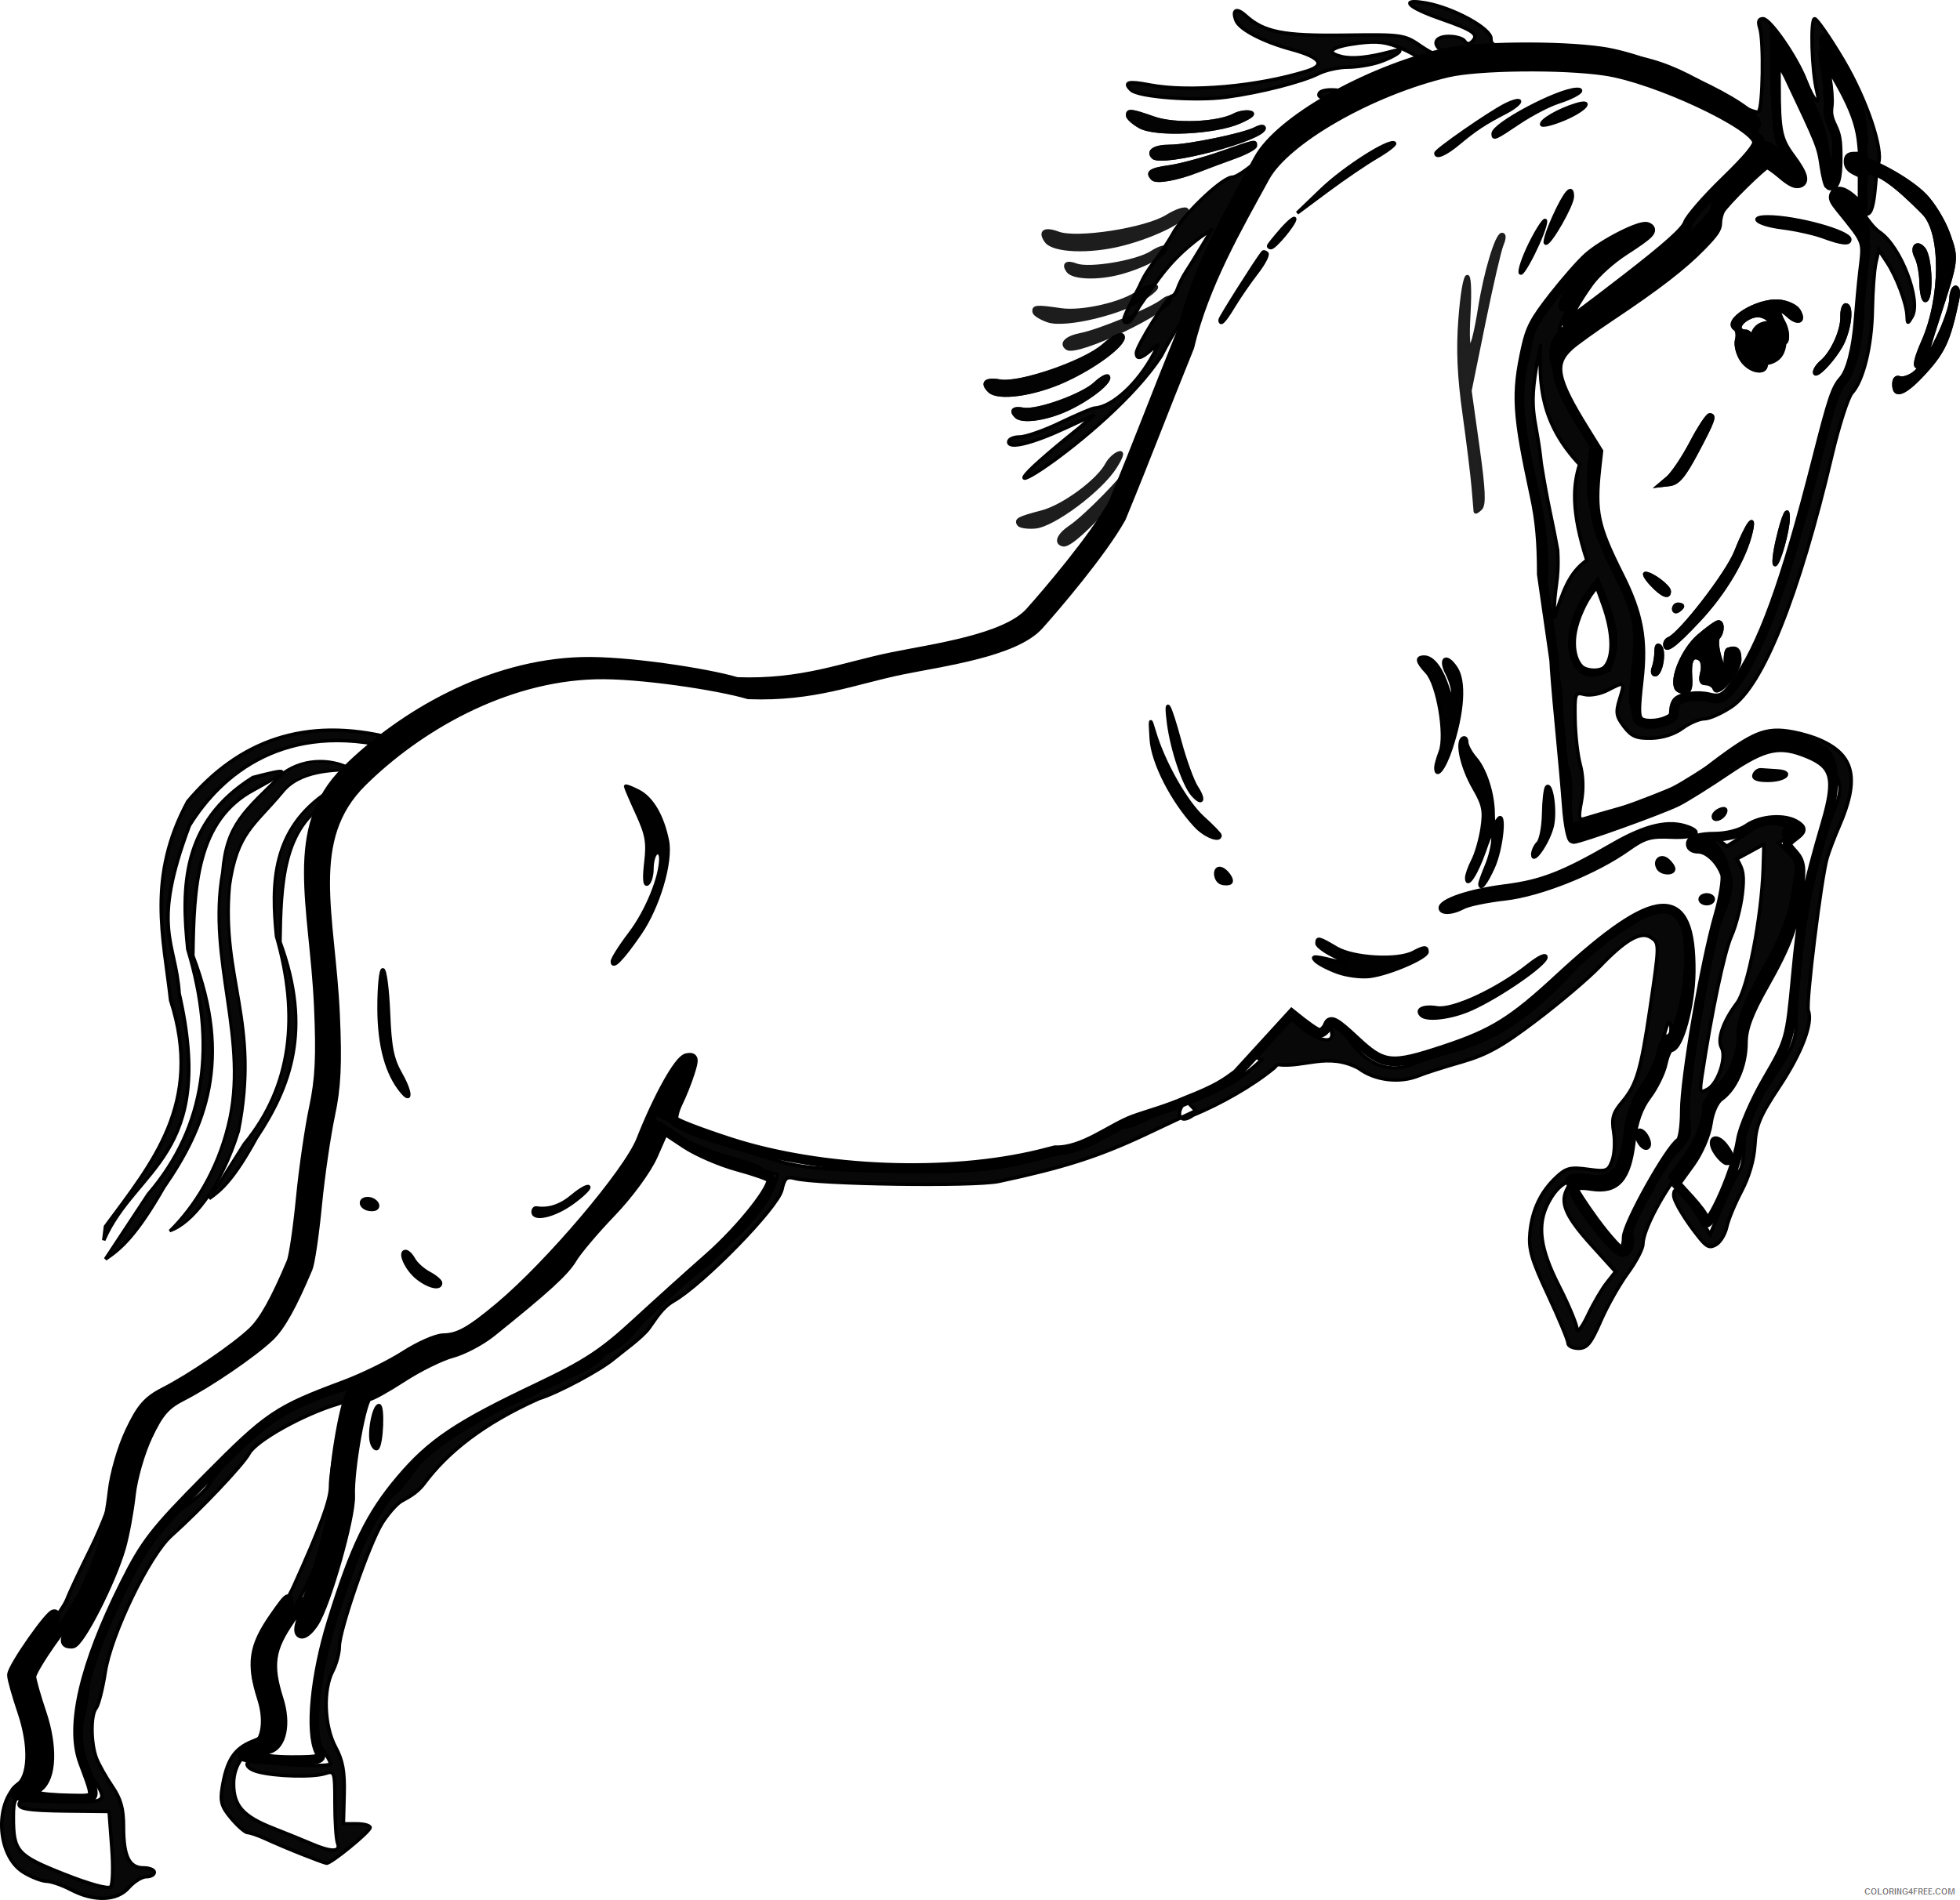 Jumping Horse Coloring Pages warszawianka jumping horse outline Printable Coloring4free